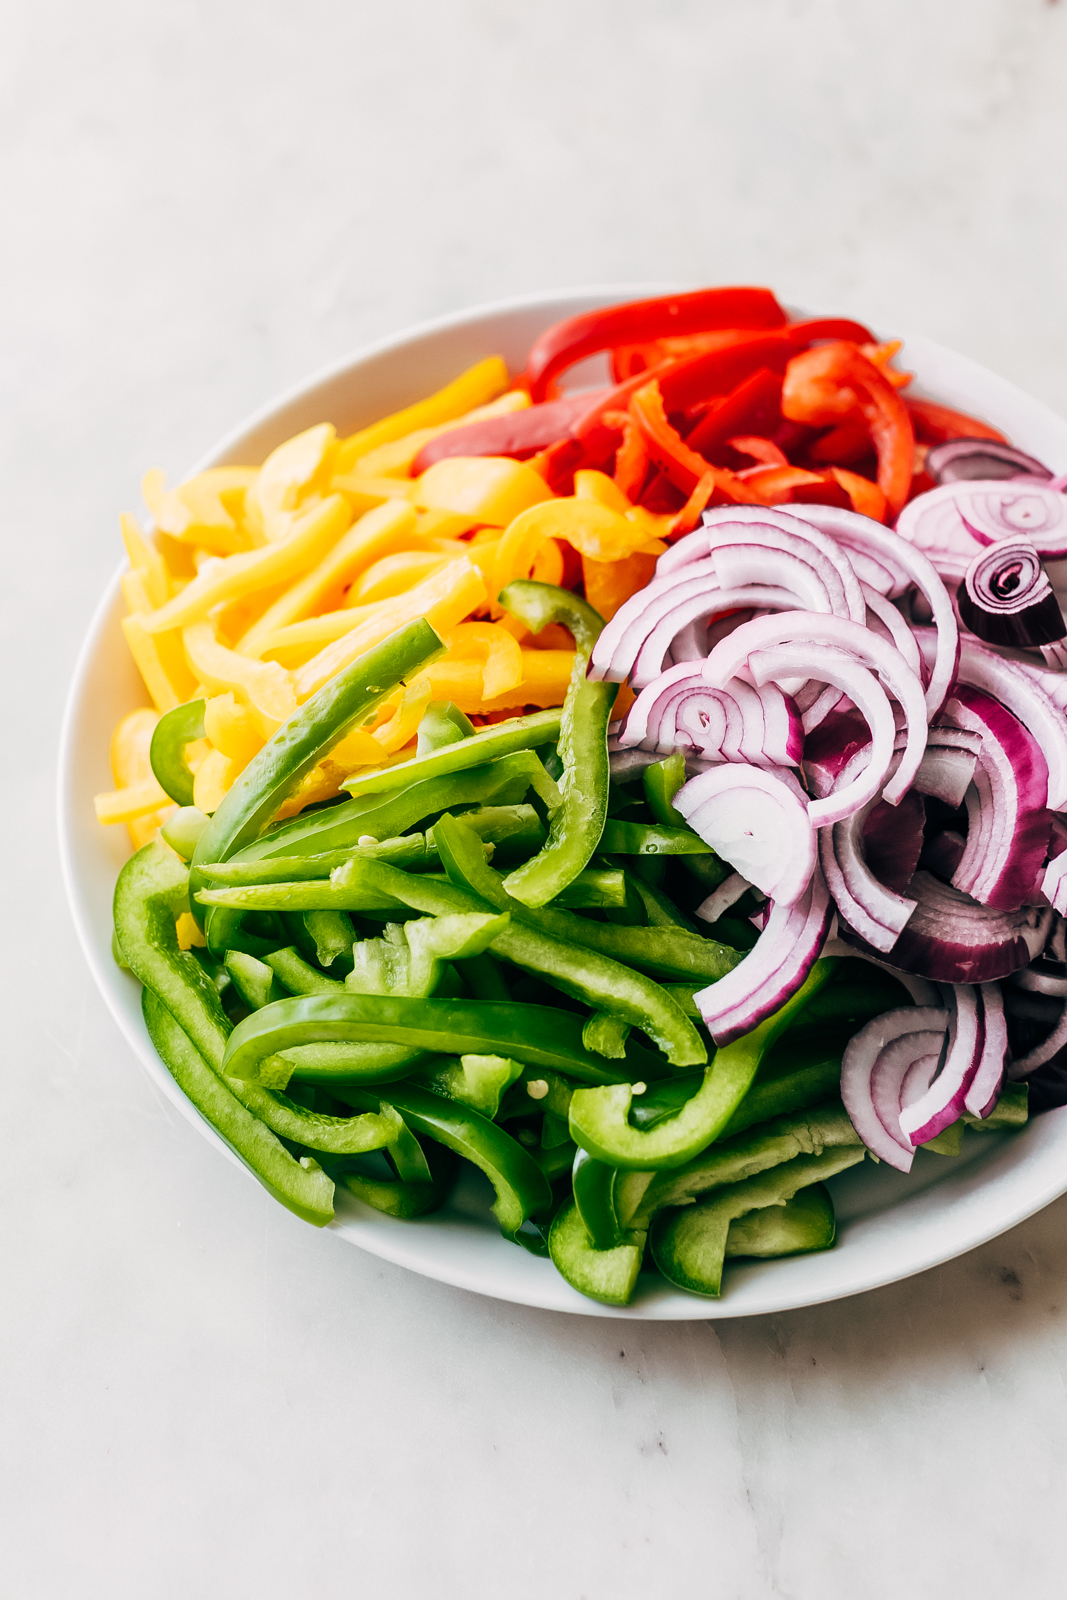 colorful sliced peppers and onions on white plate